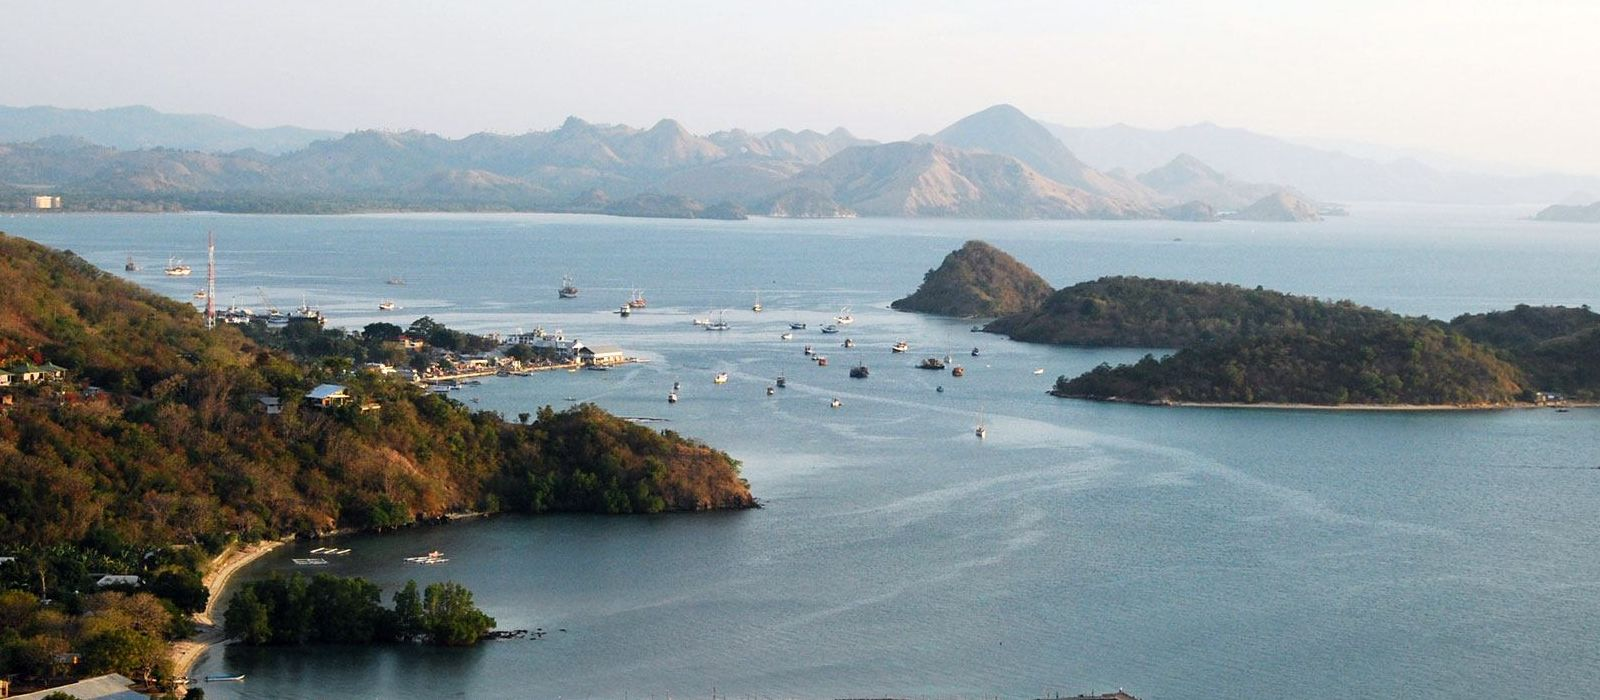 Destination Labuan Bajo Indonesia